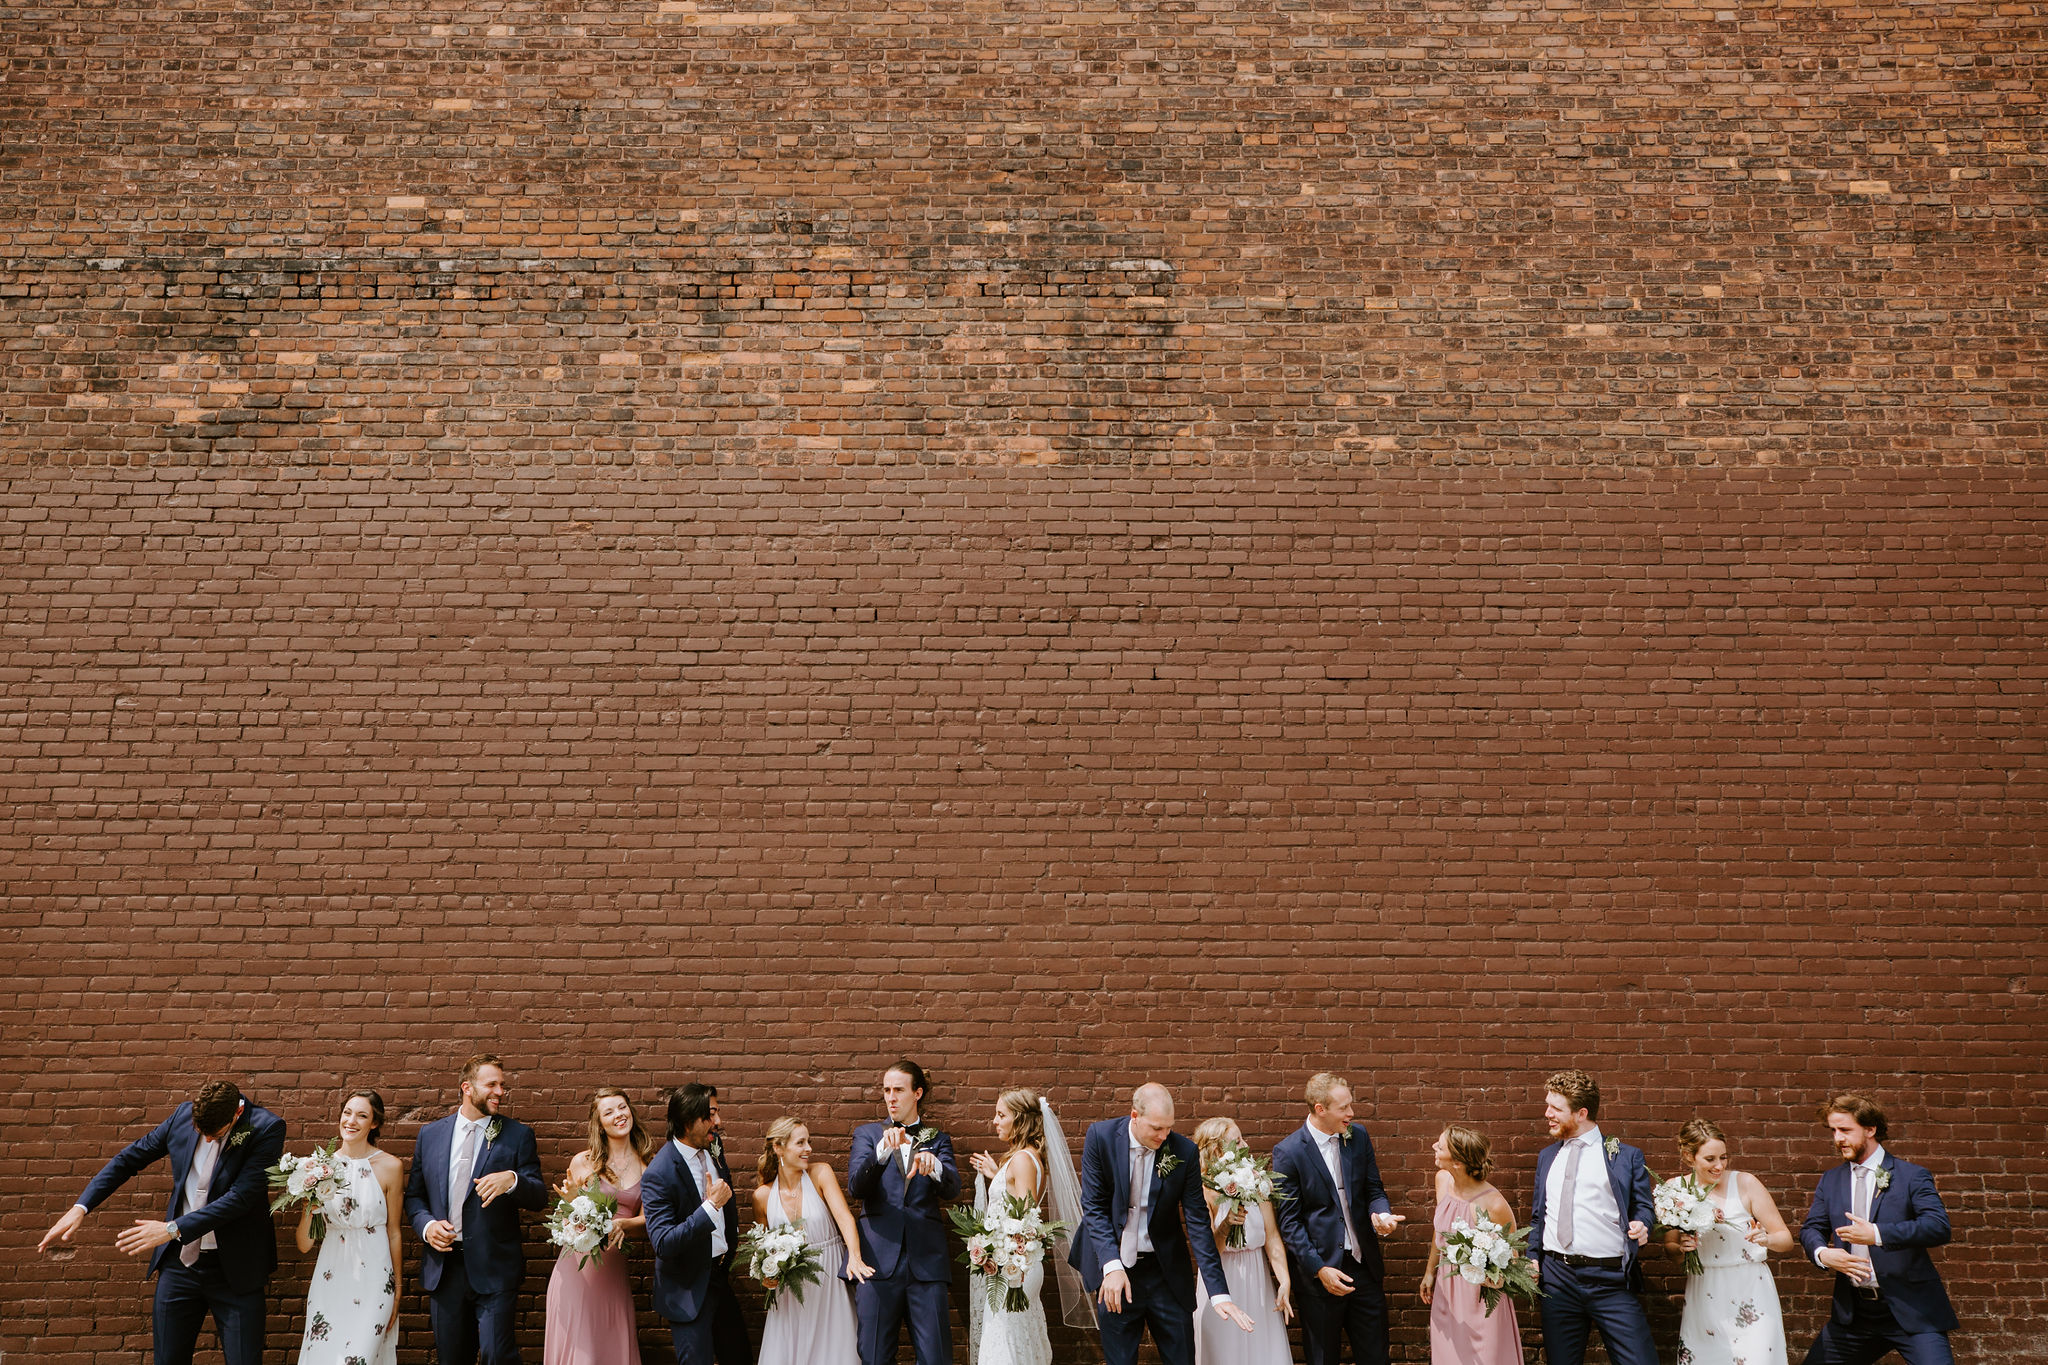 DetroitIndustrialWedding_Geoff&LyndsiPhotography_Alex&Jen_WeddingParty27.jpg